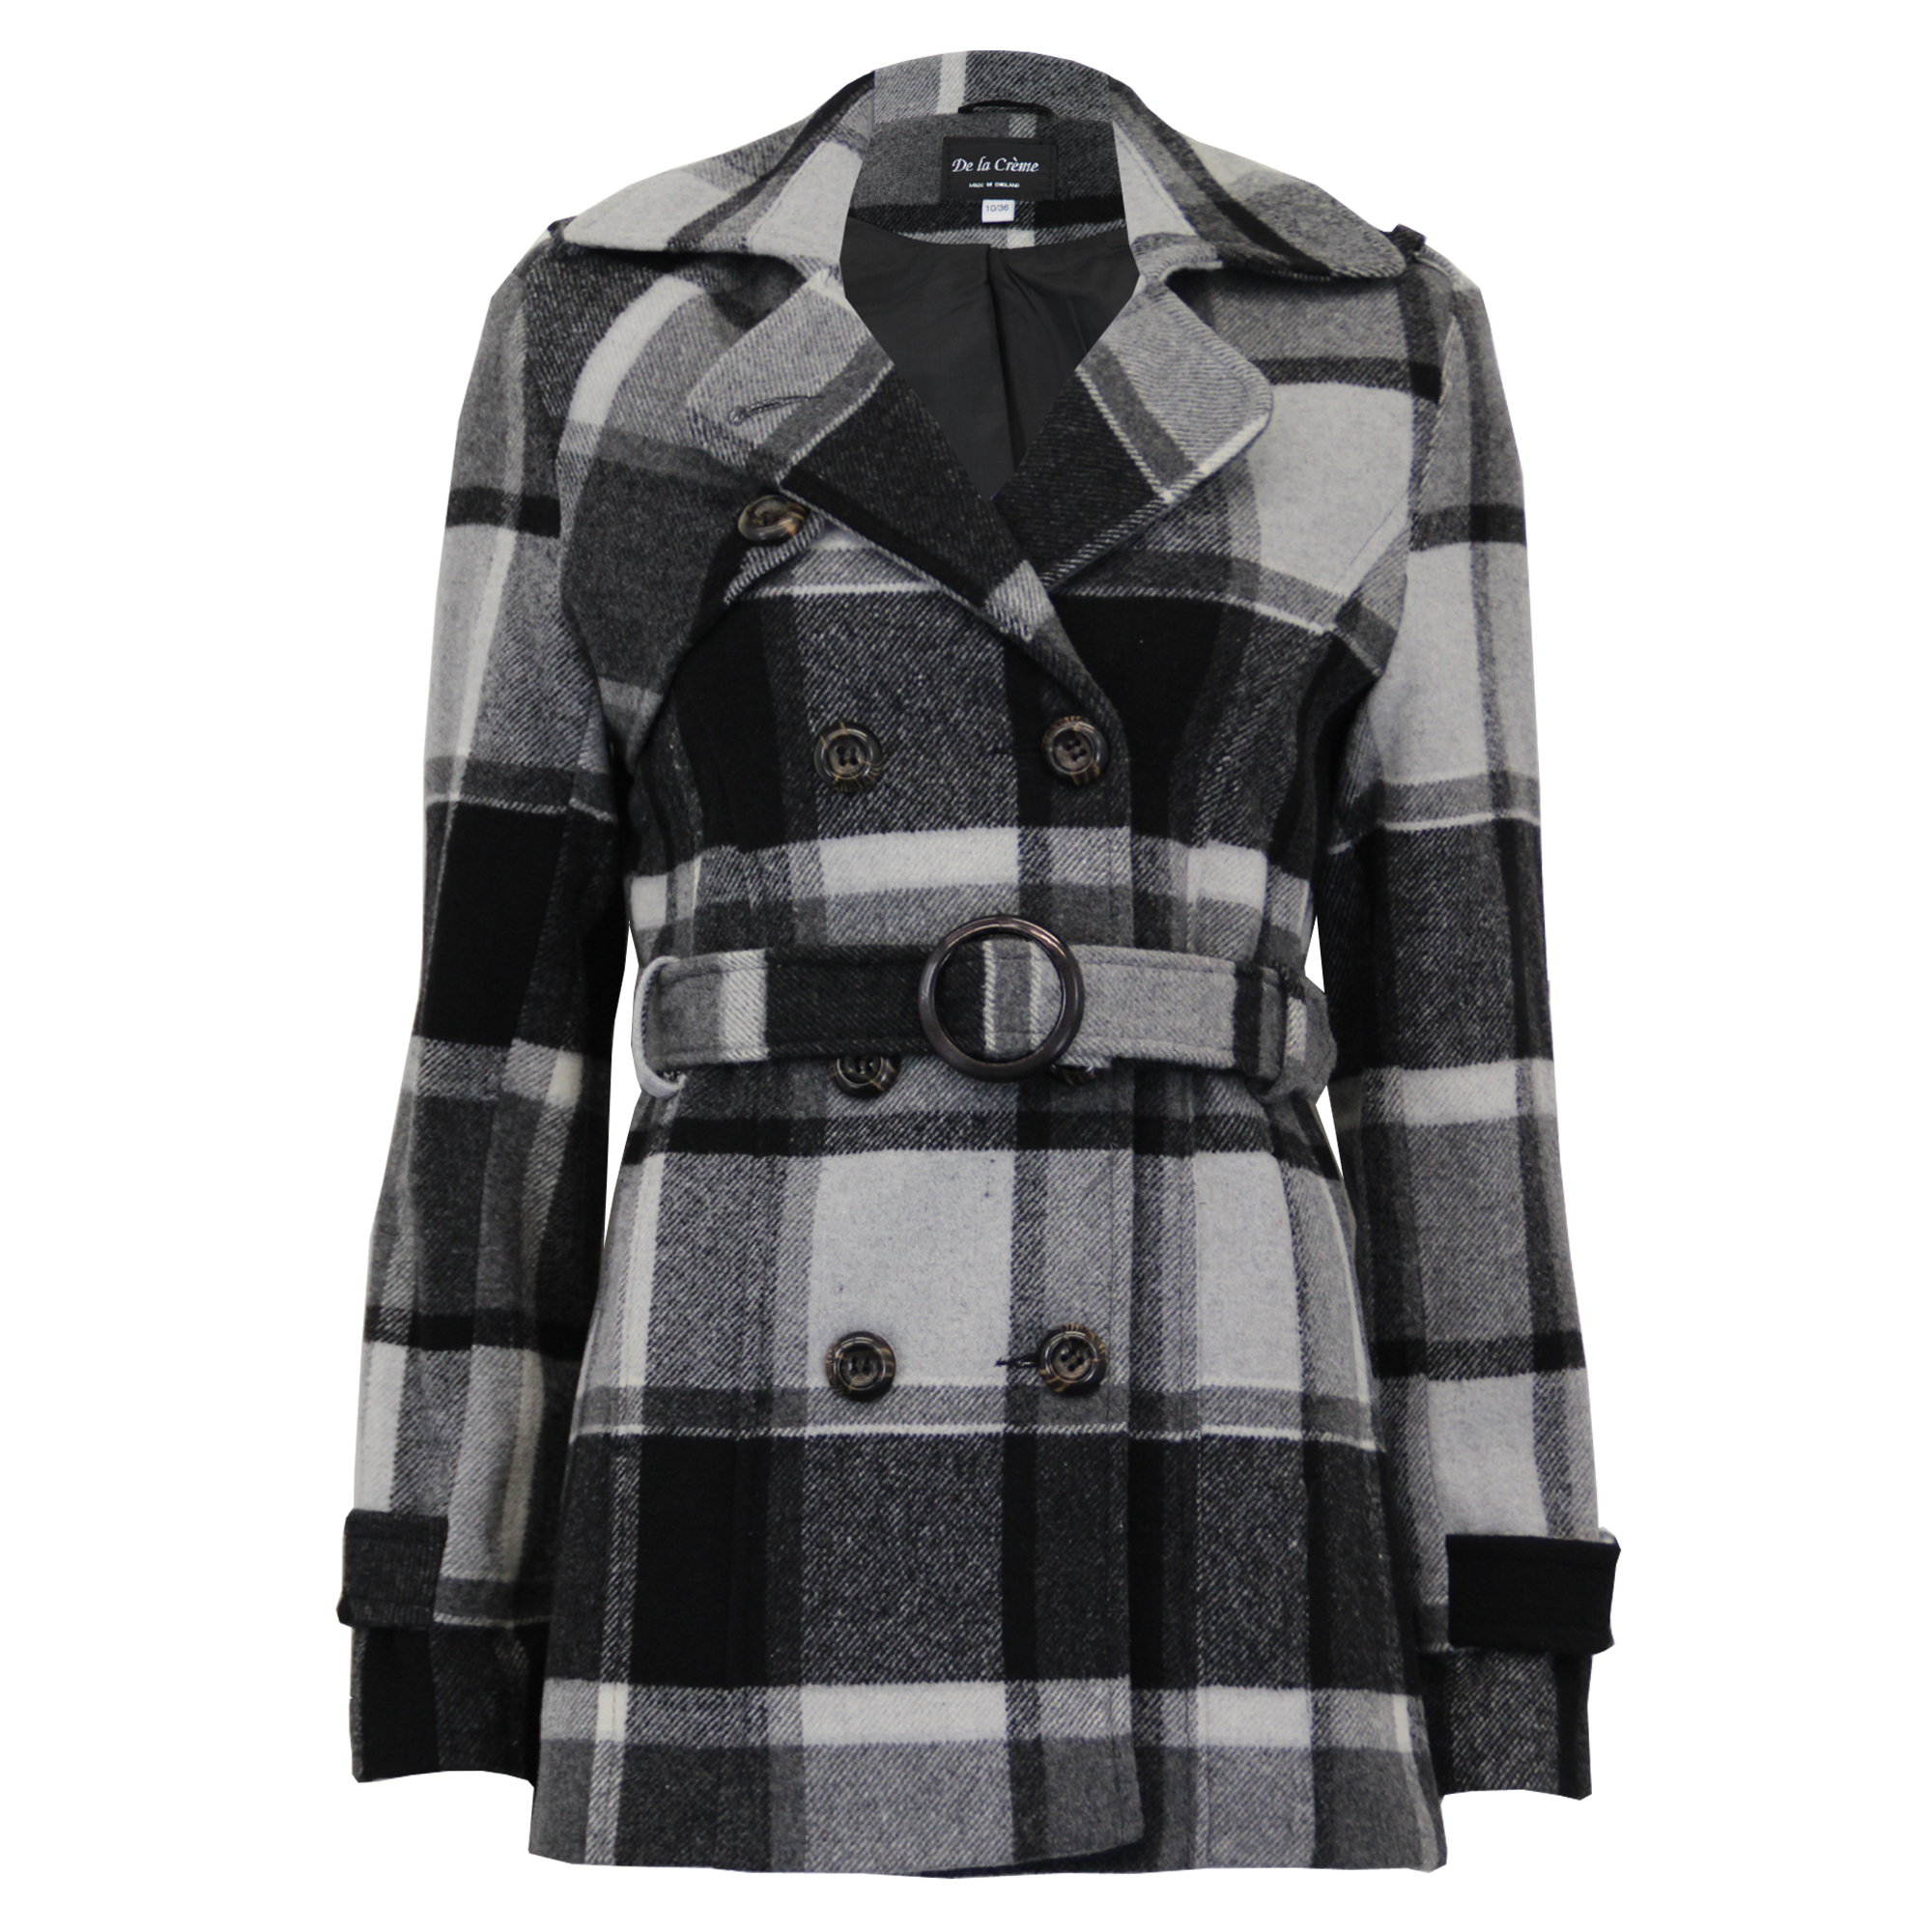 Ladies-Wool-Cashmere-Coat-Womens-Jacket-Double-Breasted-Belt-Checked-Trench-New thumbnail 14